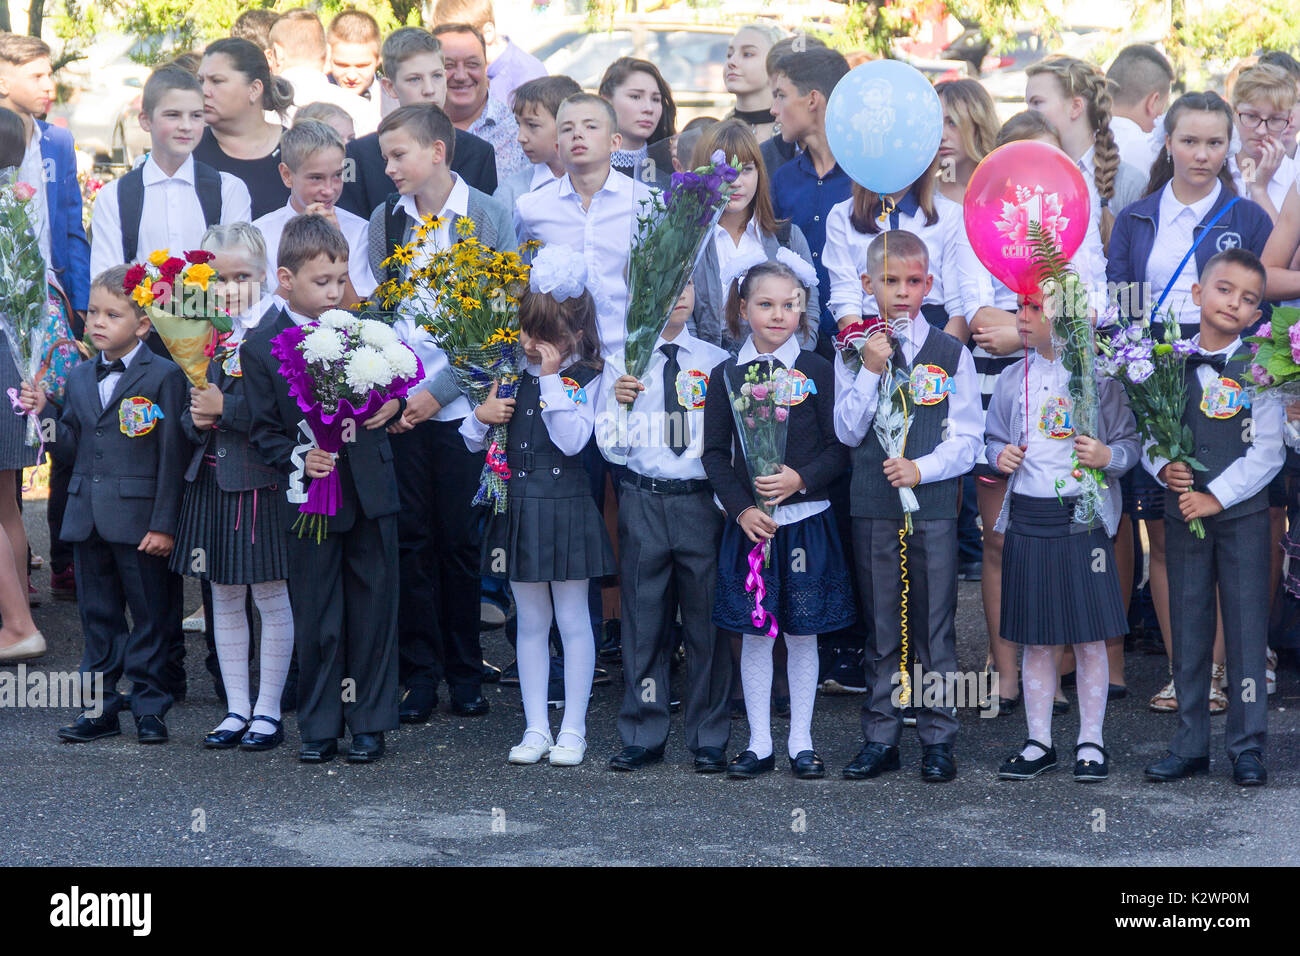 Adygea, Russia - September 1, 2017: Children enrolled in the first grade at school with teachers and parents at the inauguration of the school year in - Stock Image